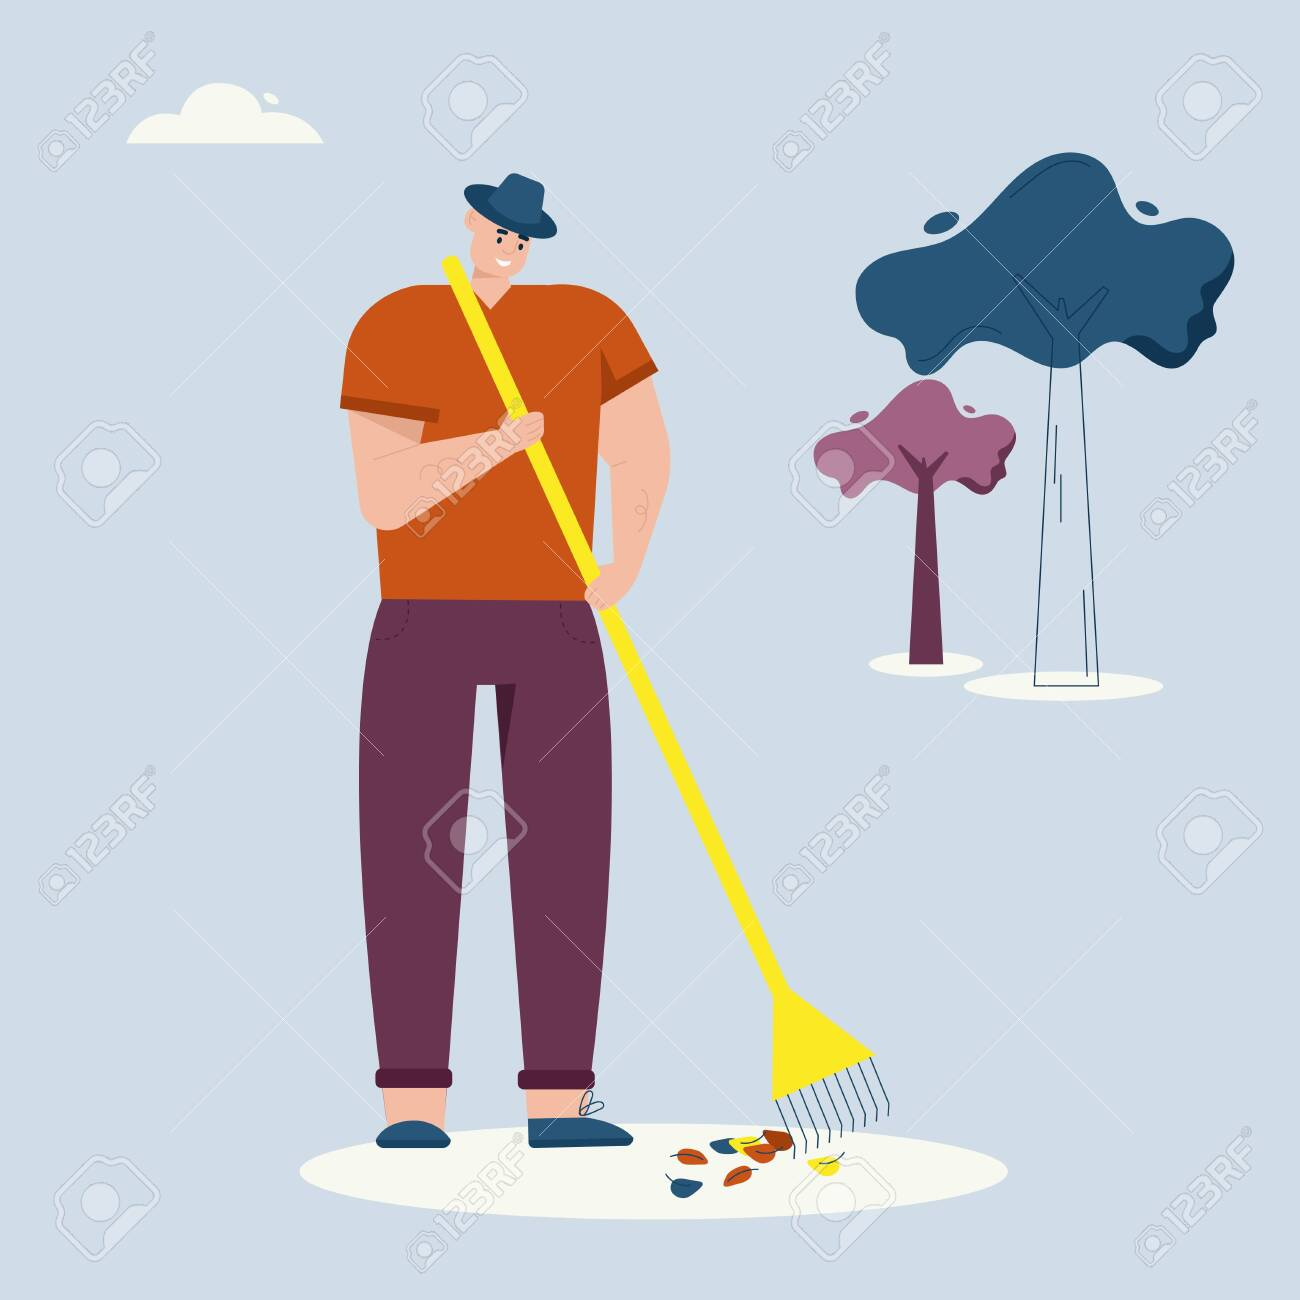 Man rakes autumn leaves, cleaning lawn. Farmer works on farm. Vector character illustration of village lifestyle, agriculture - 151135157